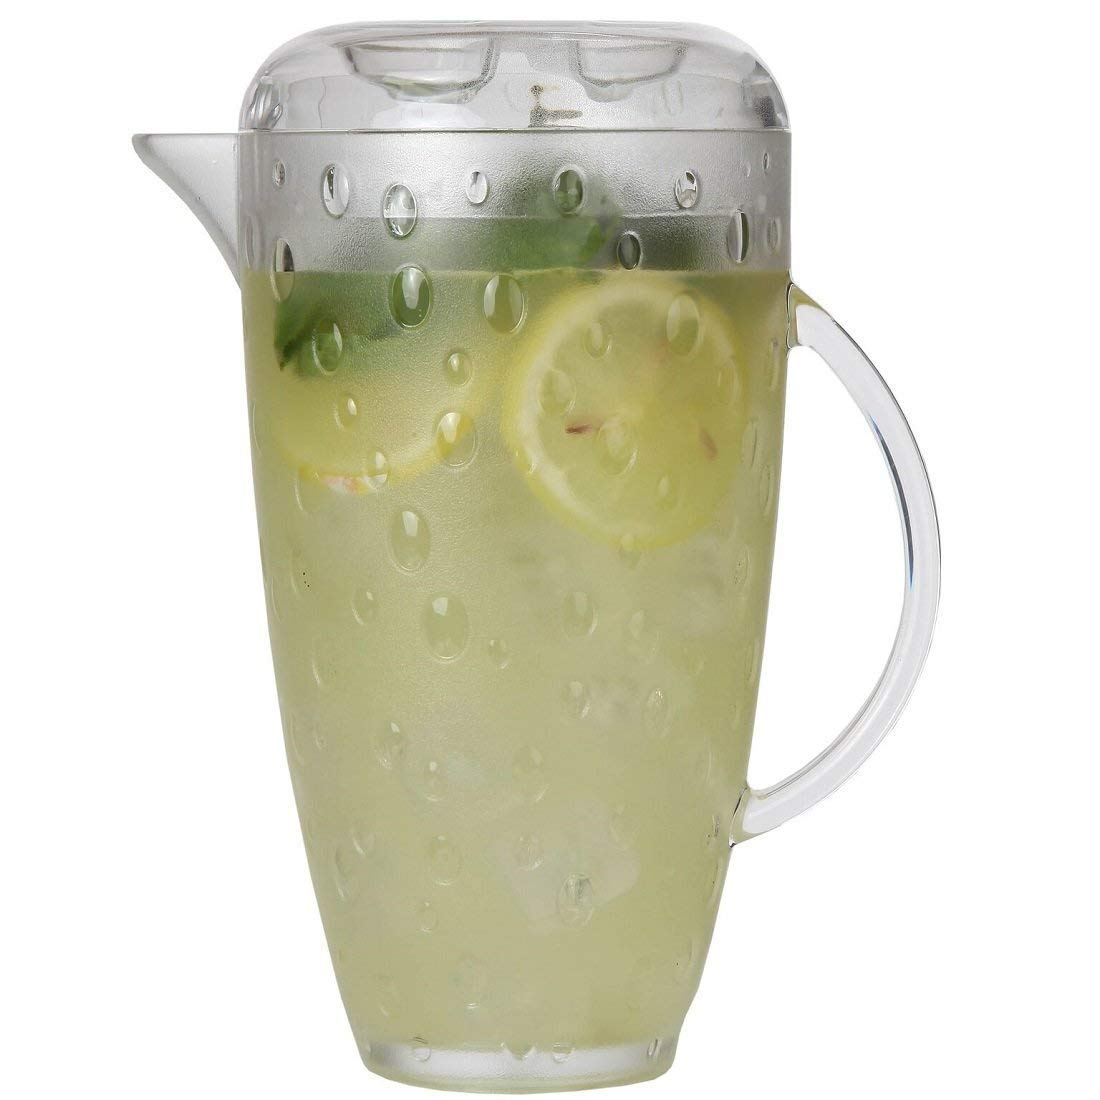 Plastic Pitcher with Lid, Food-Safe and BPA-Free, Elegant and Ideal for Indoor or Outdoor Use for Lemonade, Iced Tea, Beer or Water